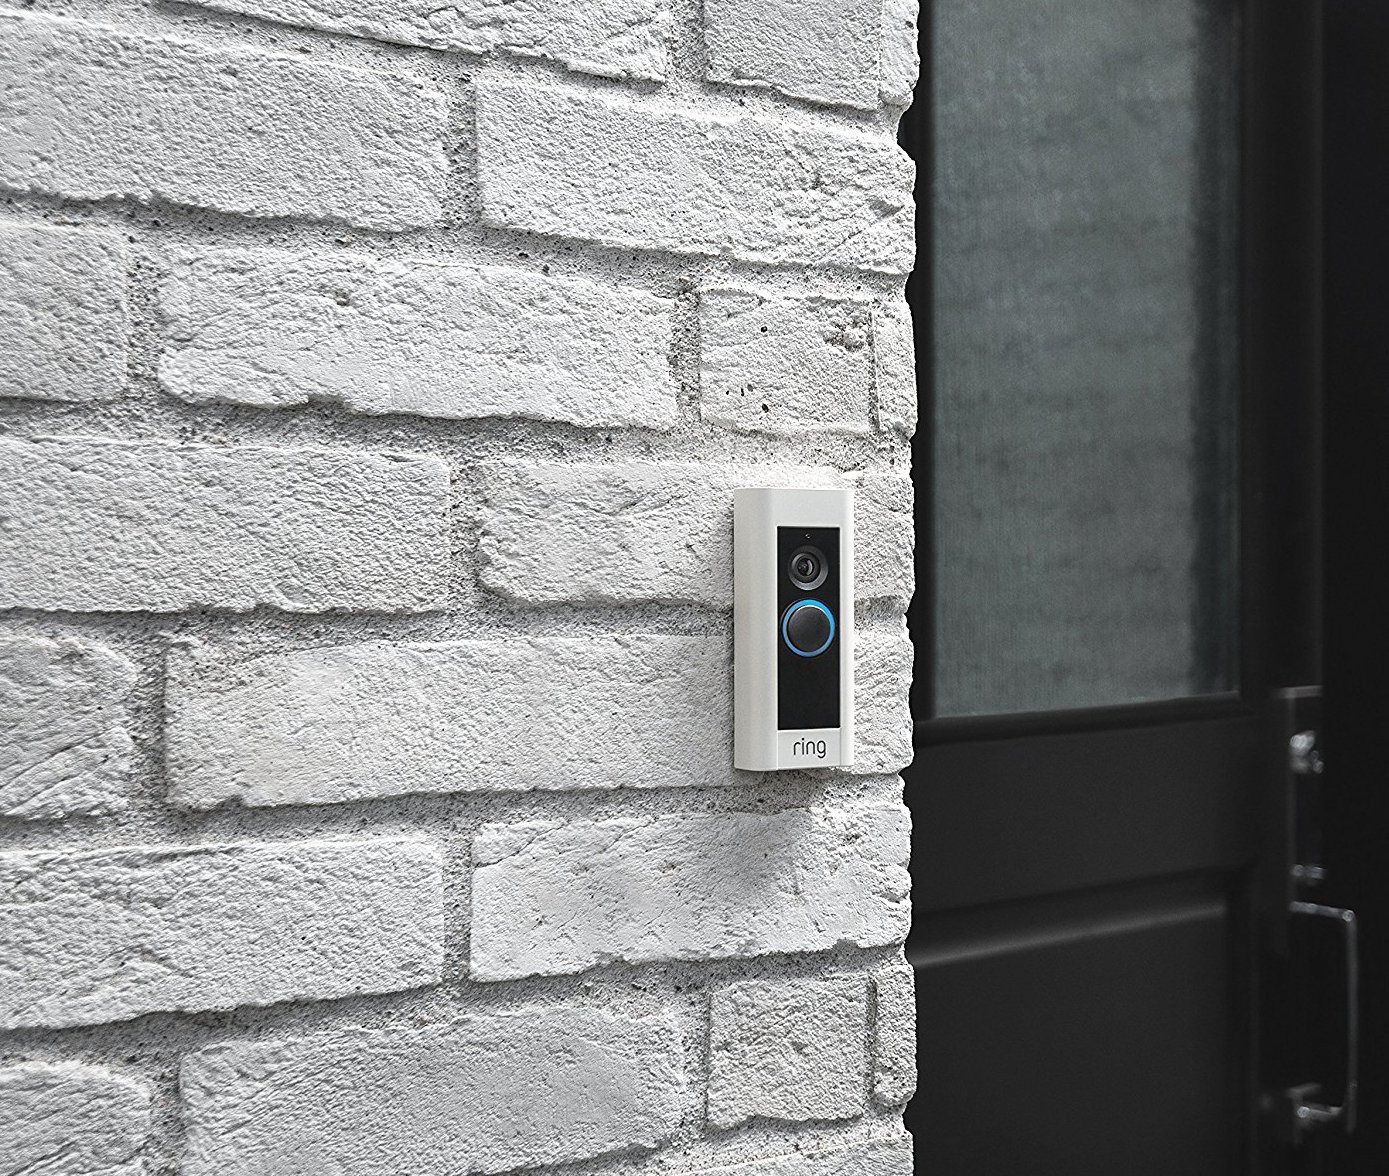 Even with Amazon Acquisition, Ring Says HomeKit Support is Still Coming to Some Products